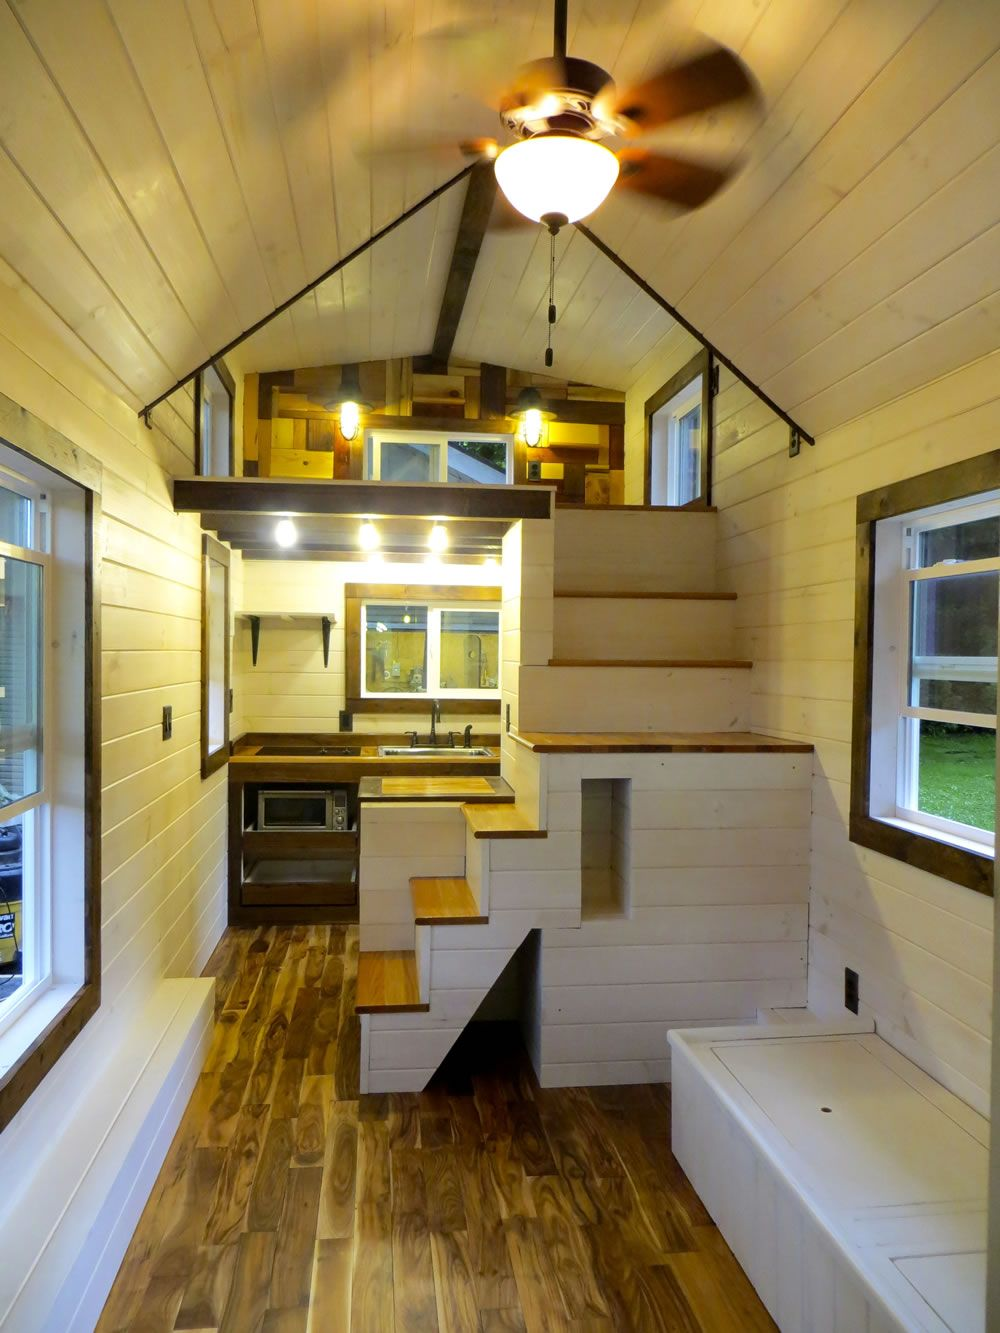 Tiny house designs ideas find inside best interior design decorating also pin by tom strack on small cabins pinterest rh